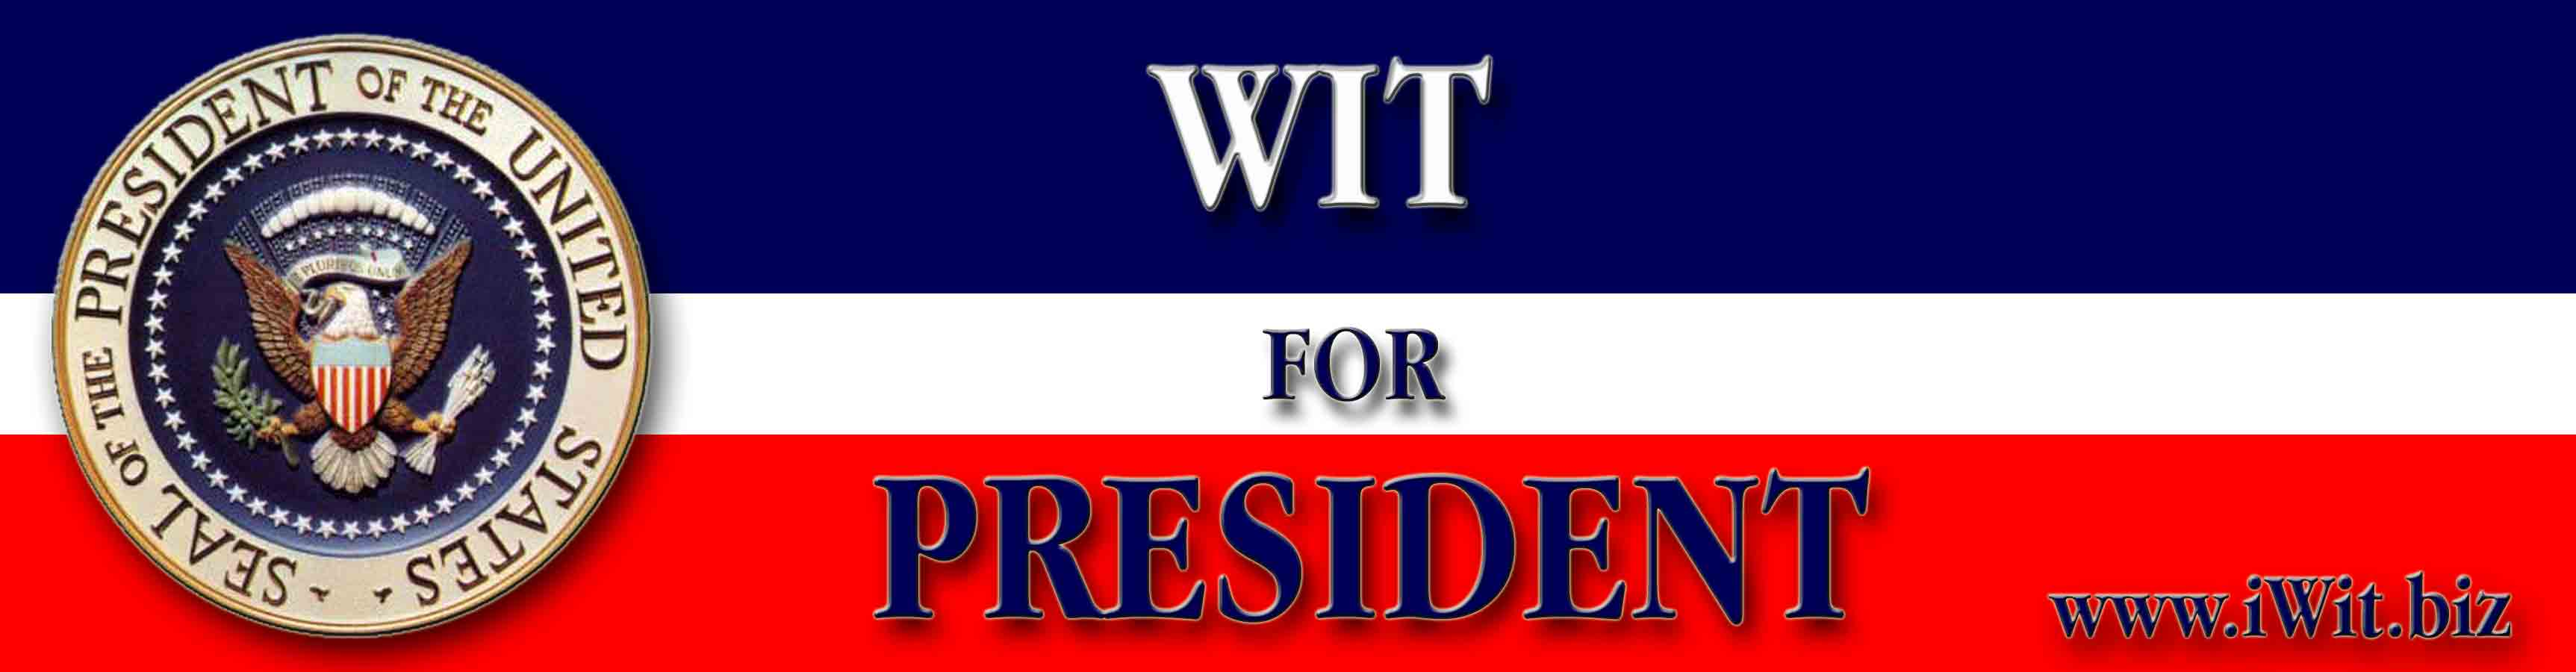 The President by Wit  Bumpersticker 1